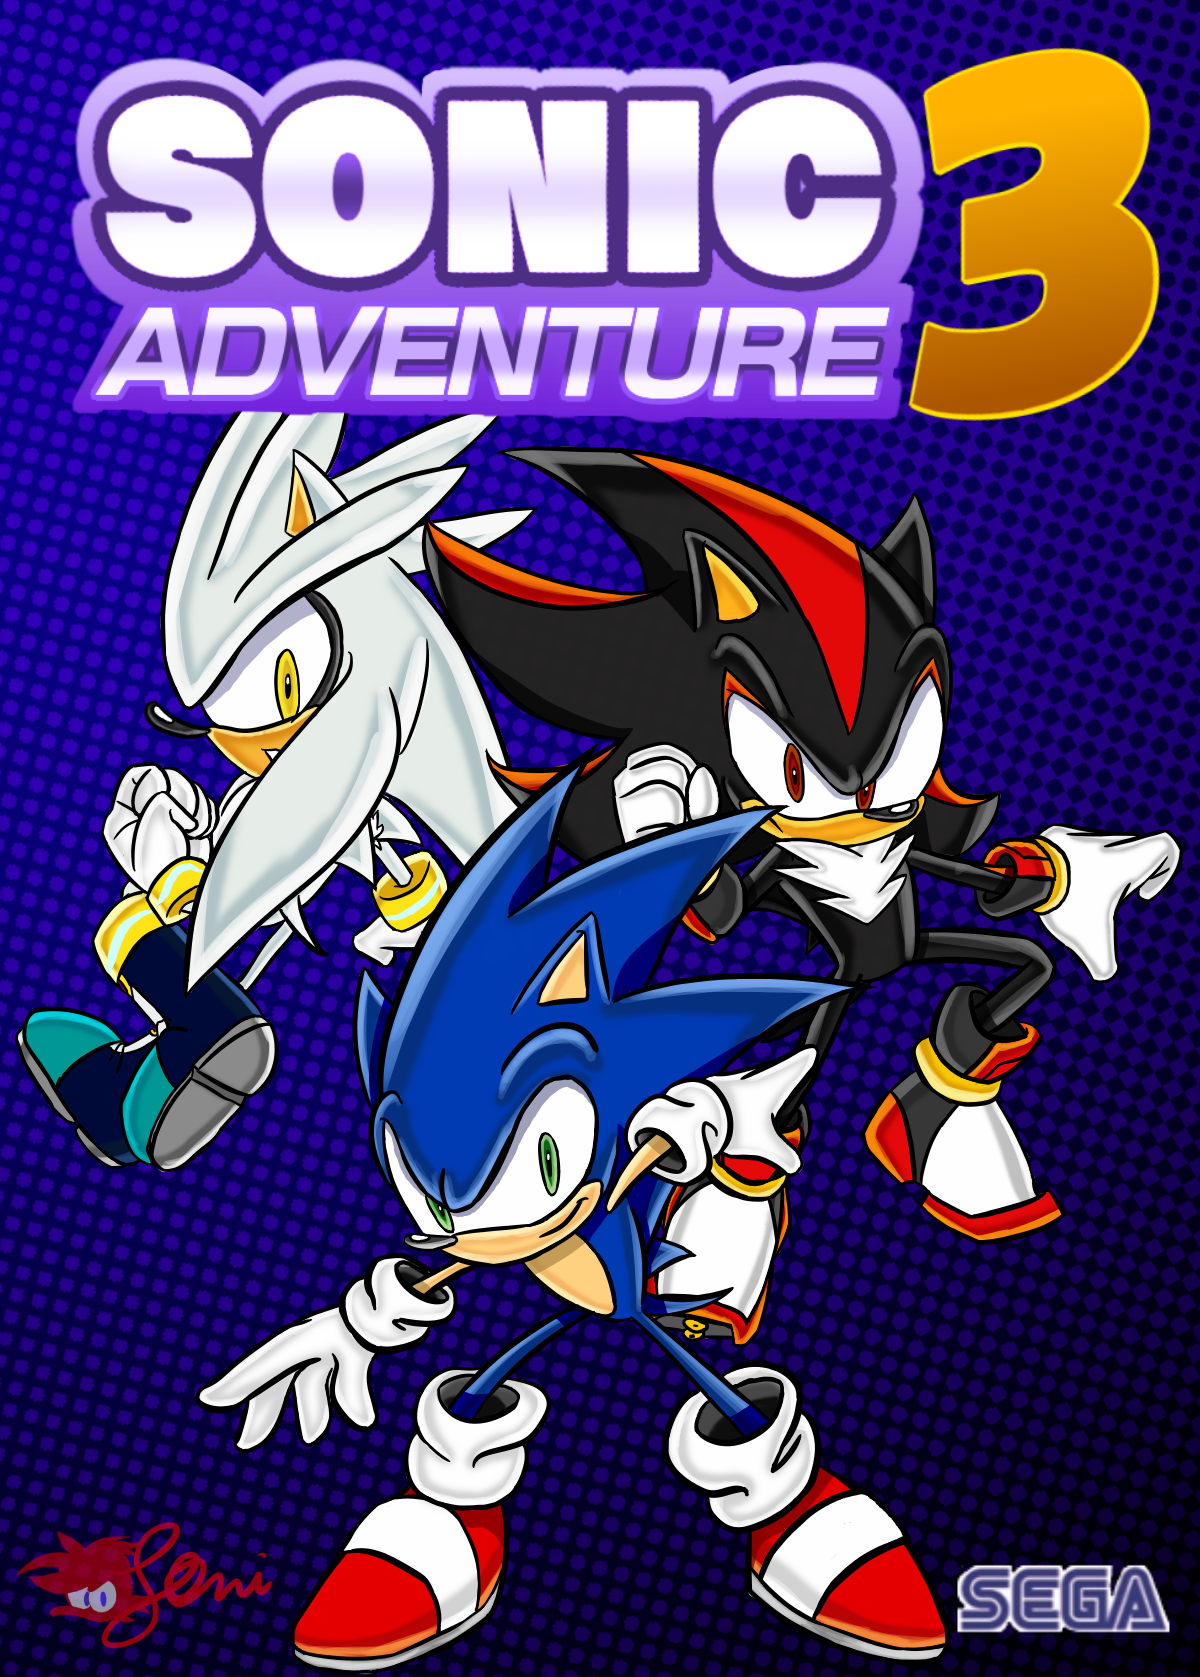 Sonic Adventure 3 - Fake Cover Art by JLuisJoni on Newgrounds